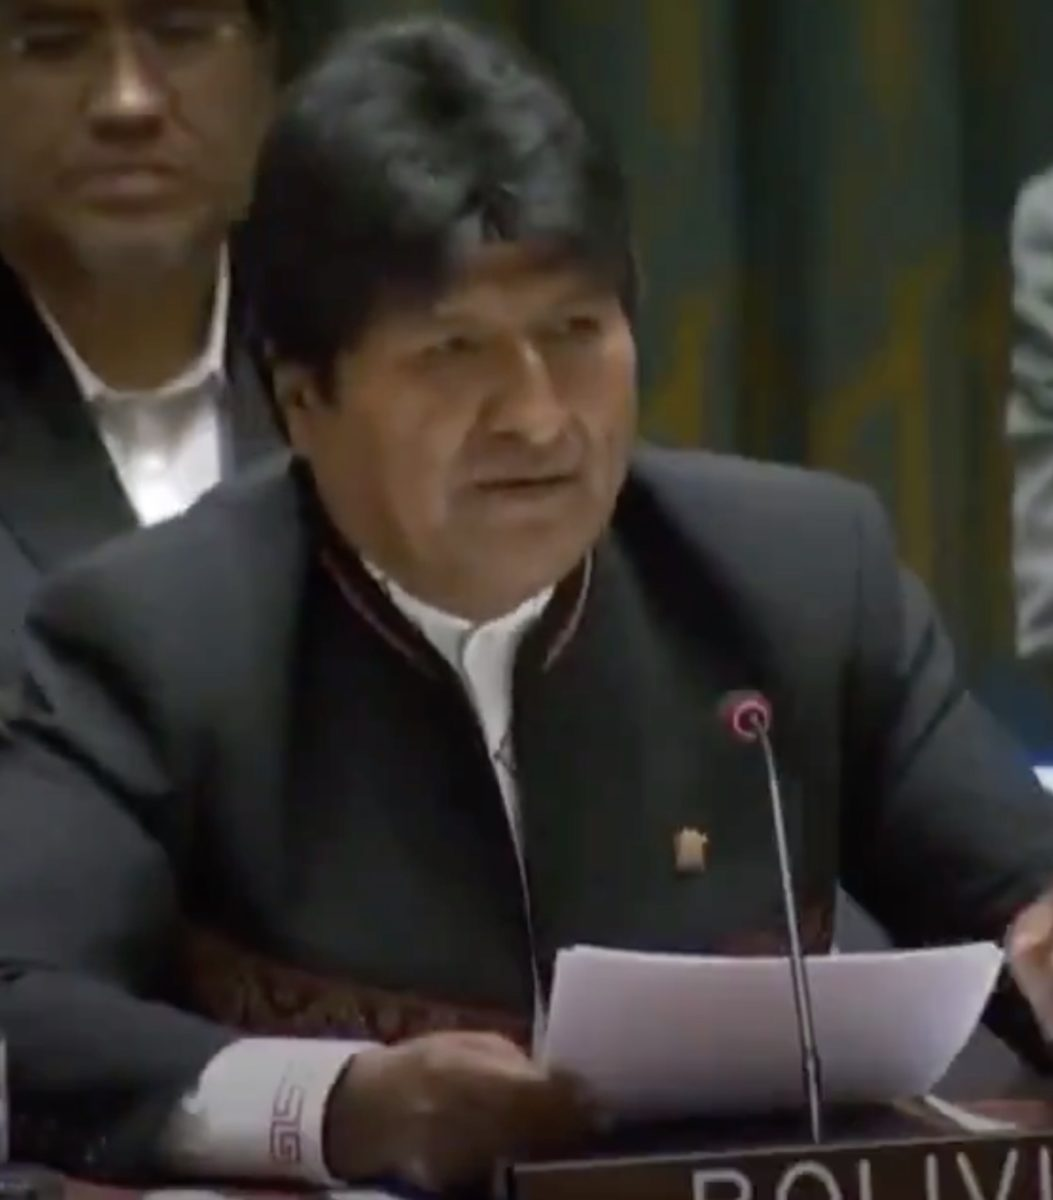 Bolivia Adds to the Ranks of Global Political Chaos